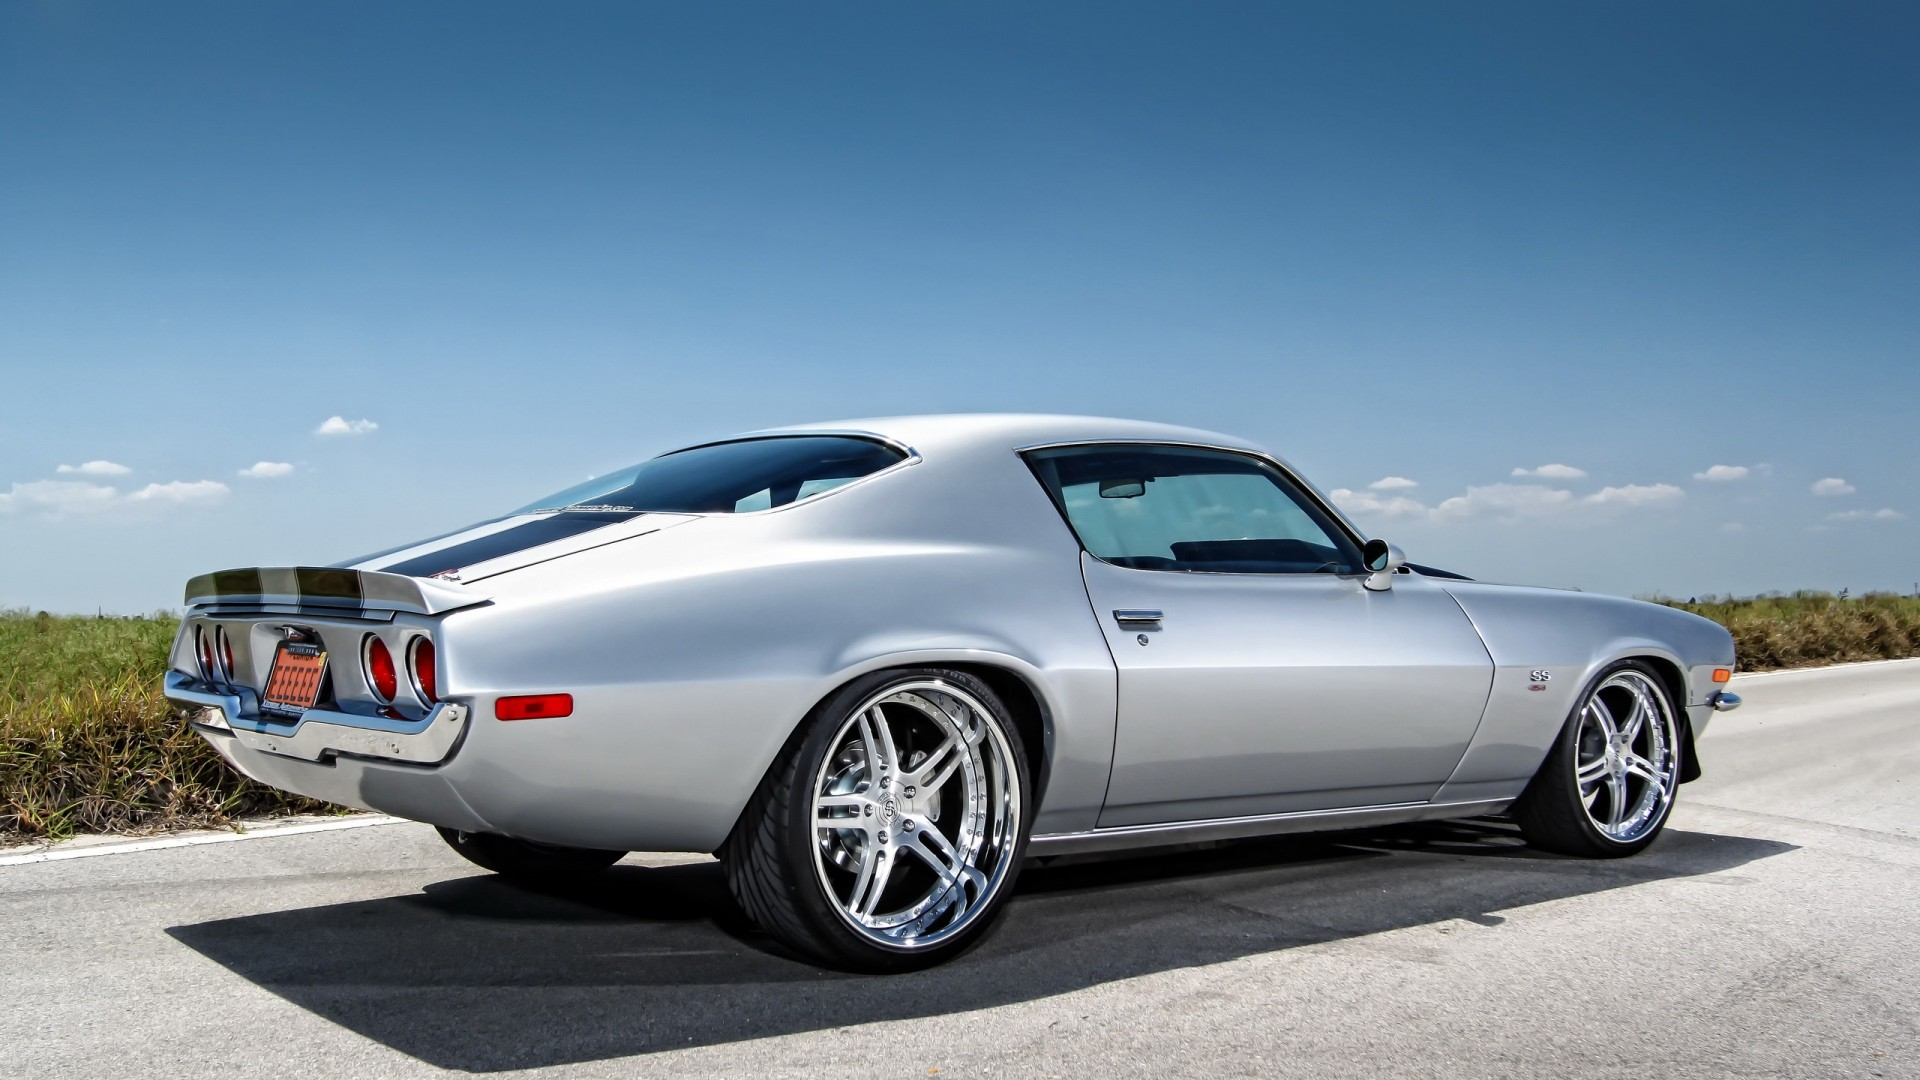 chevrolet, tuning, muscle car